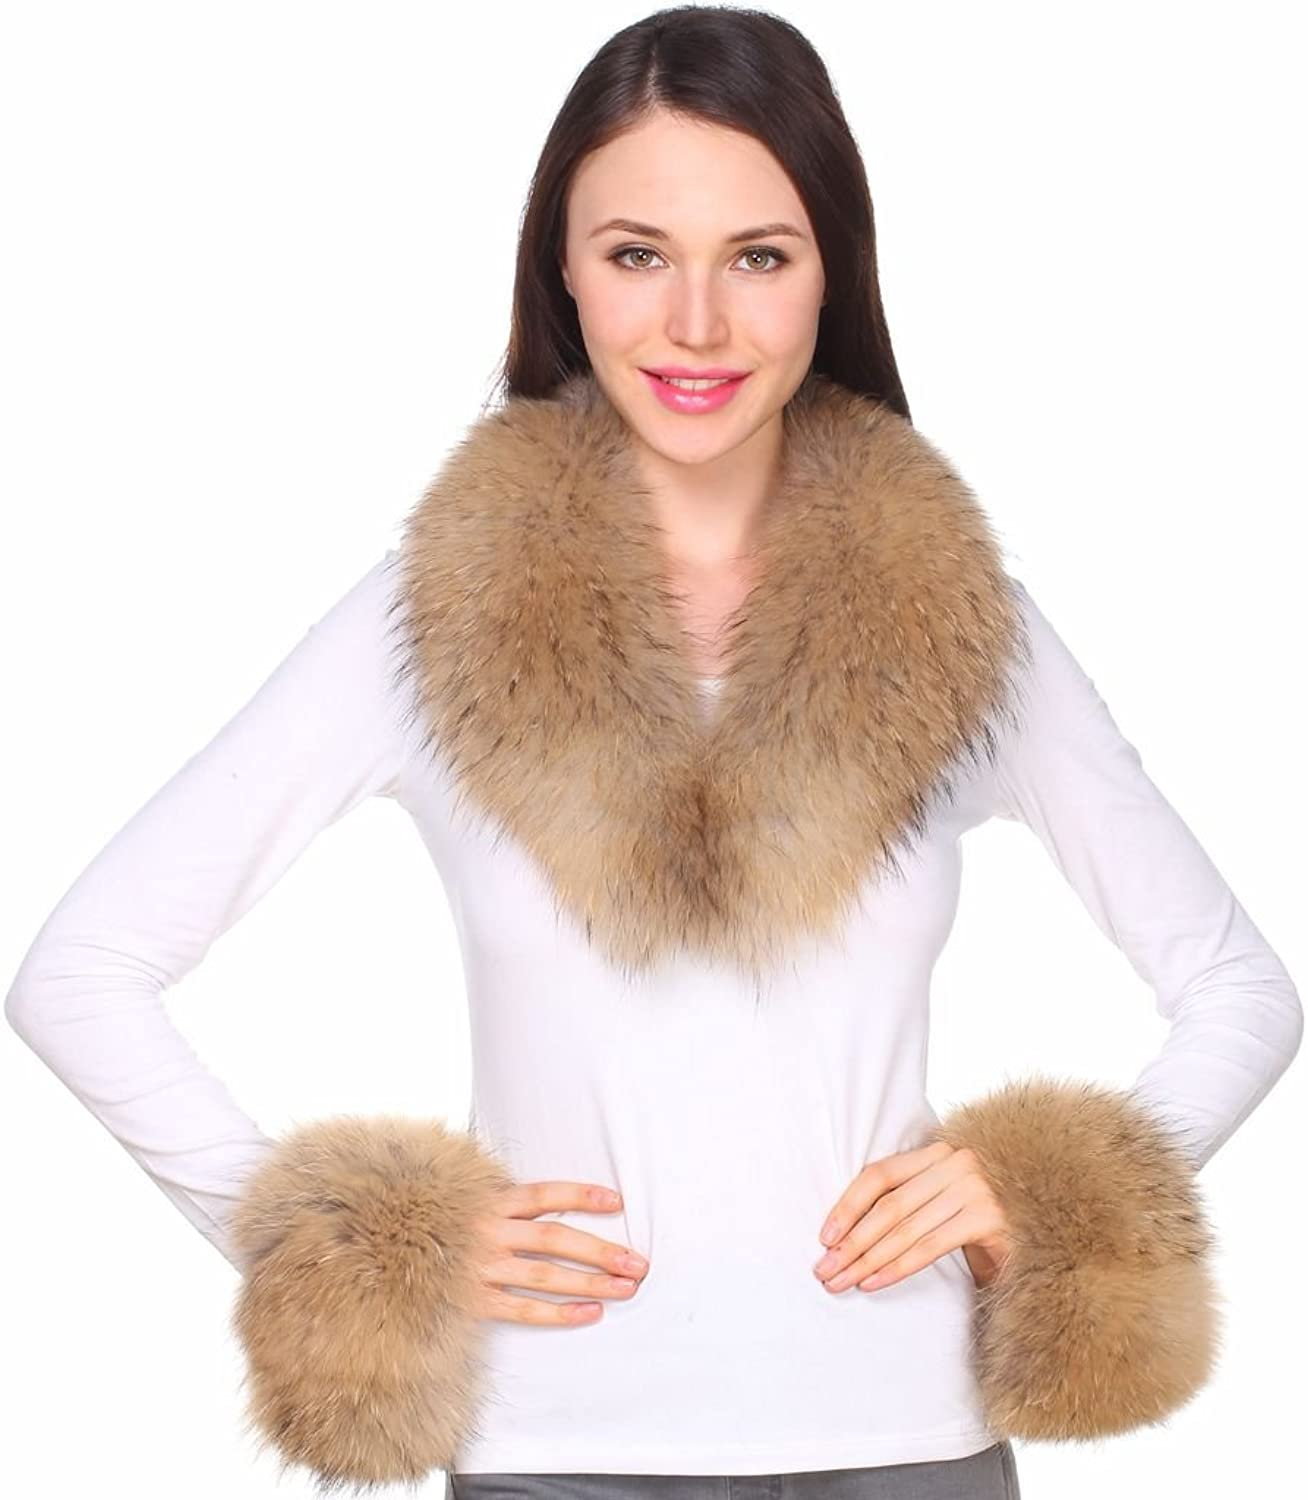 Ferand Women's Detachable Real Raccoon Fur Collar and Cuffs for Jacket Coat in Winter